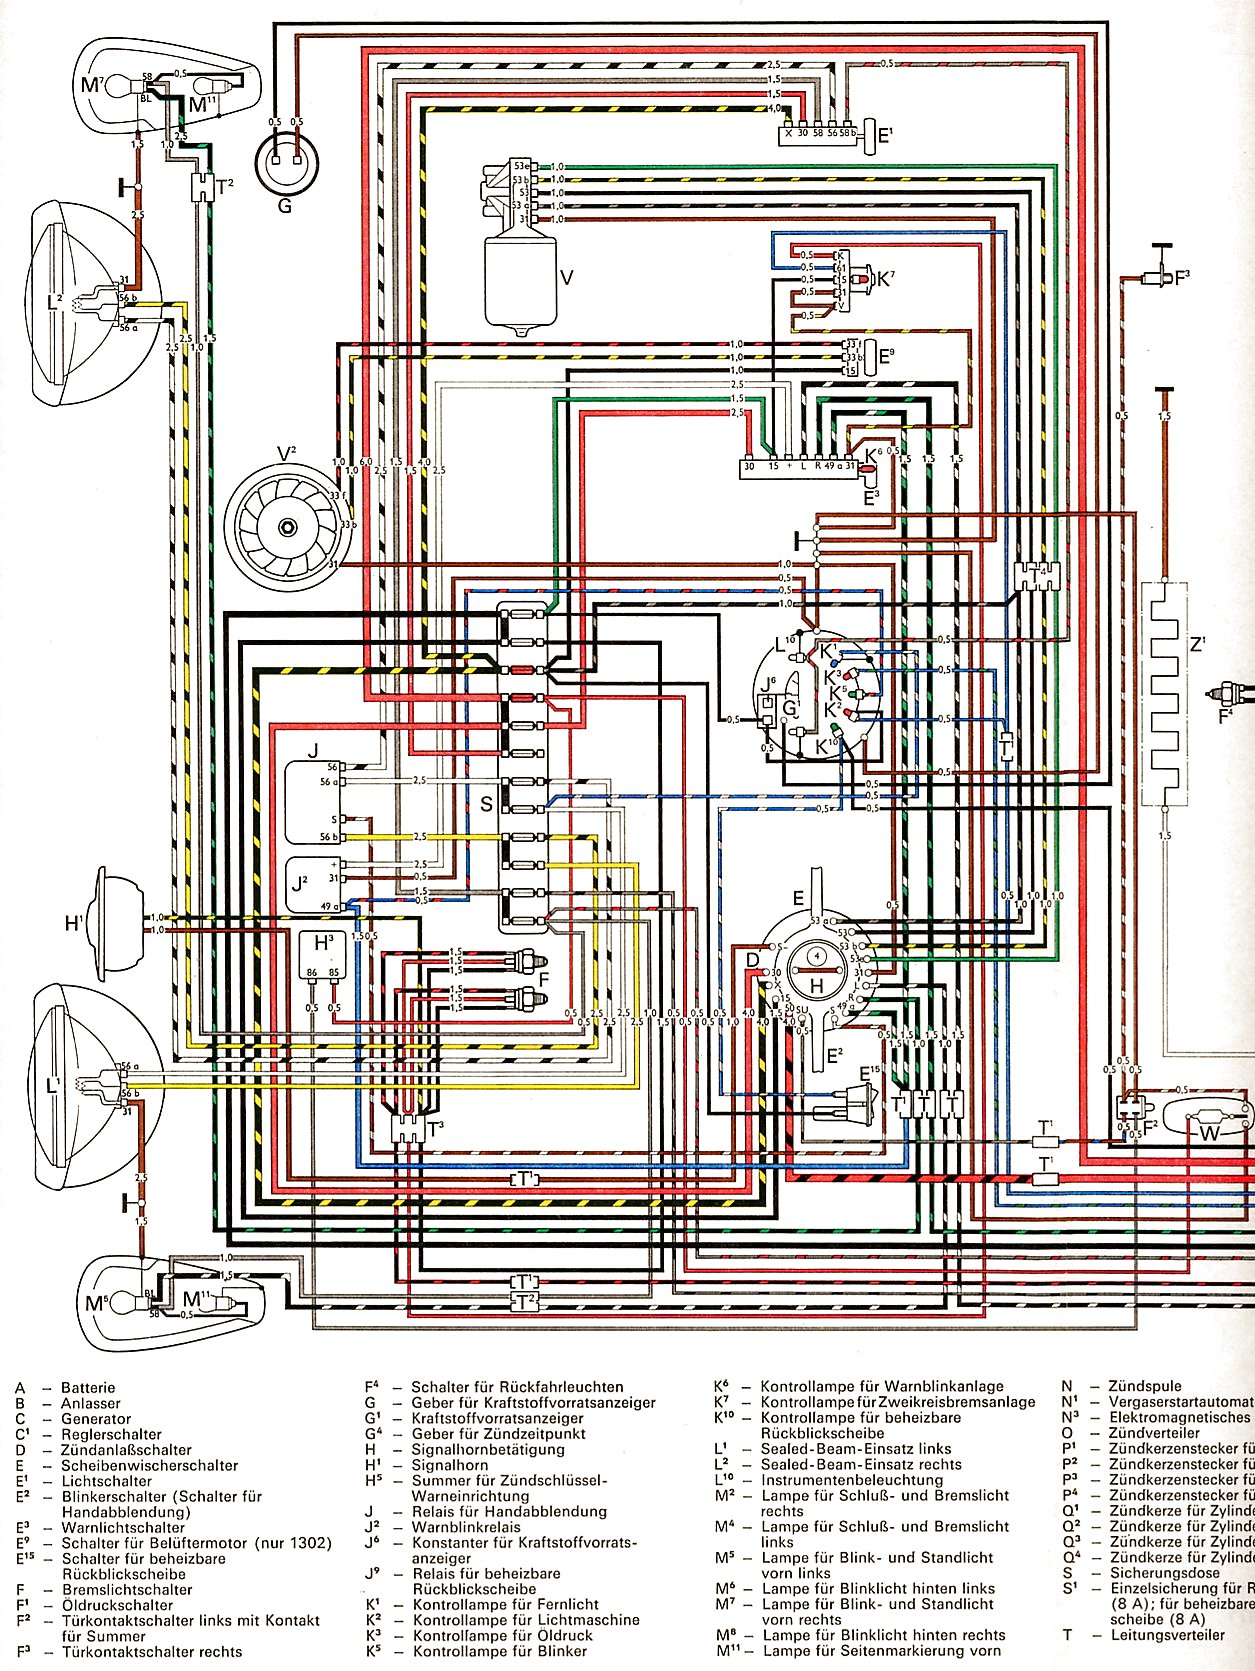 72 Volkswagen Bug Wiring Harness Diagram Libraries For 74 Diagrams Schema1974 Vw Thing Third Level 64